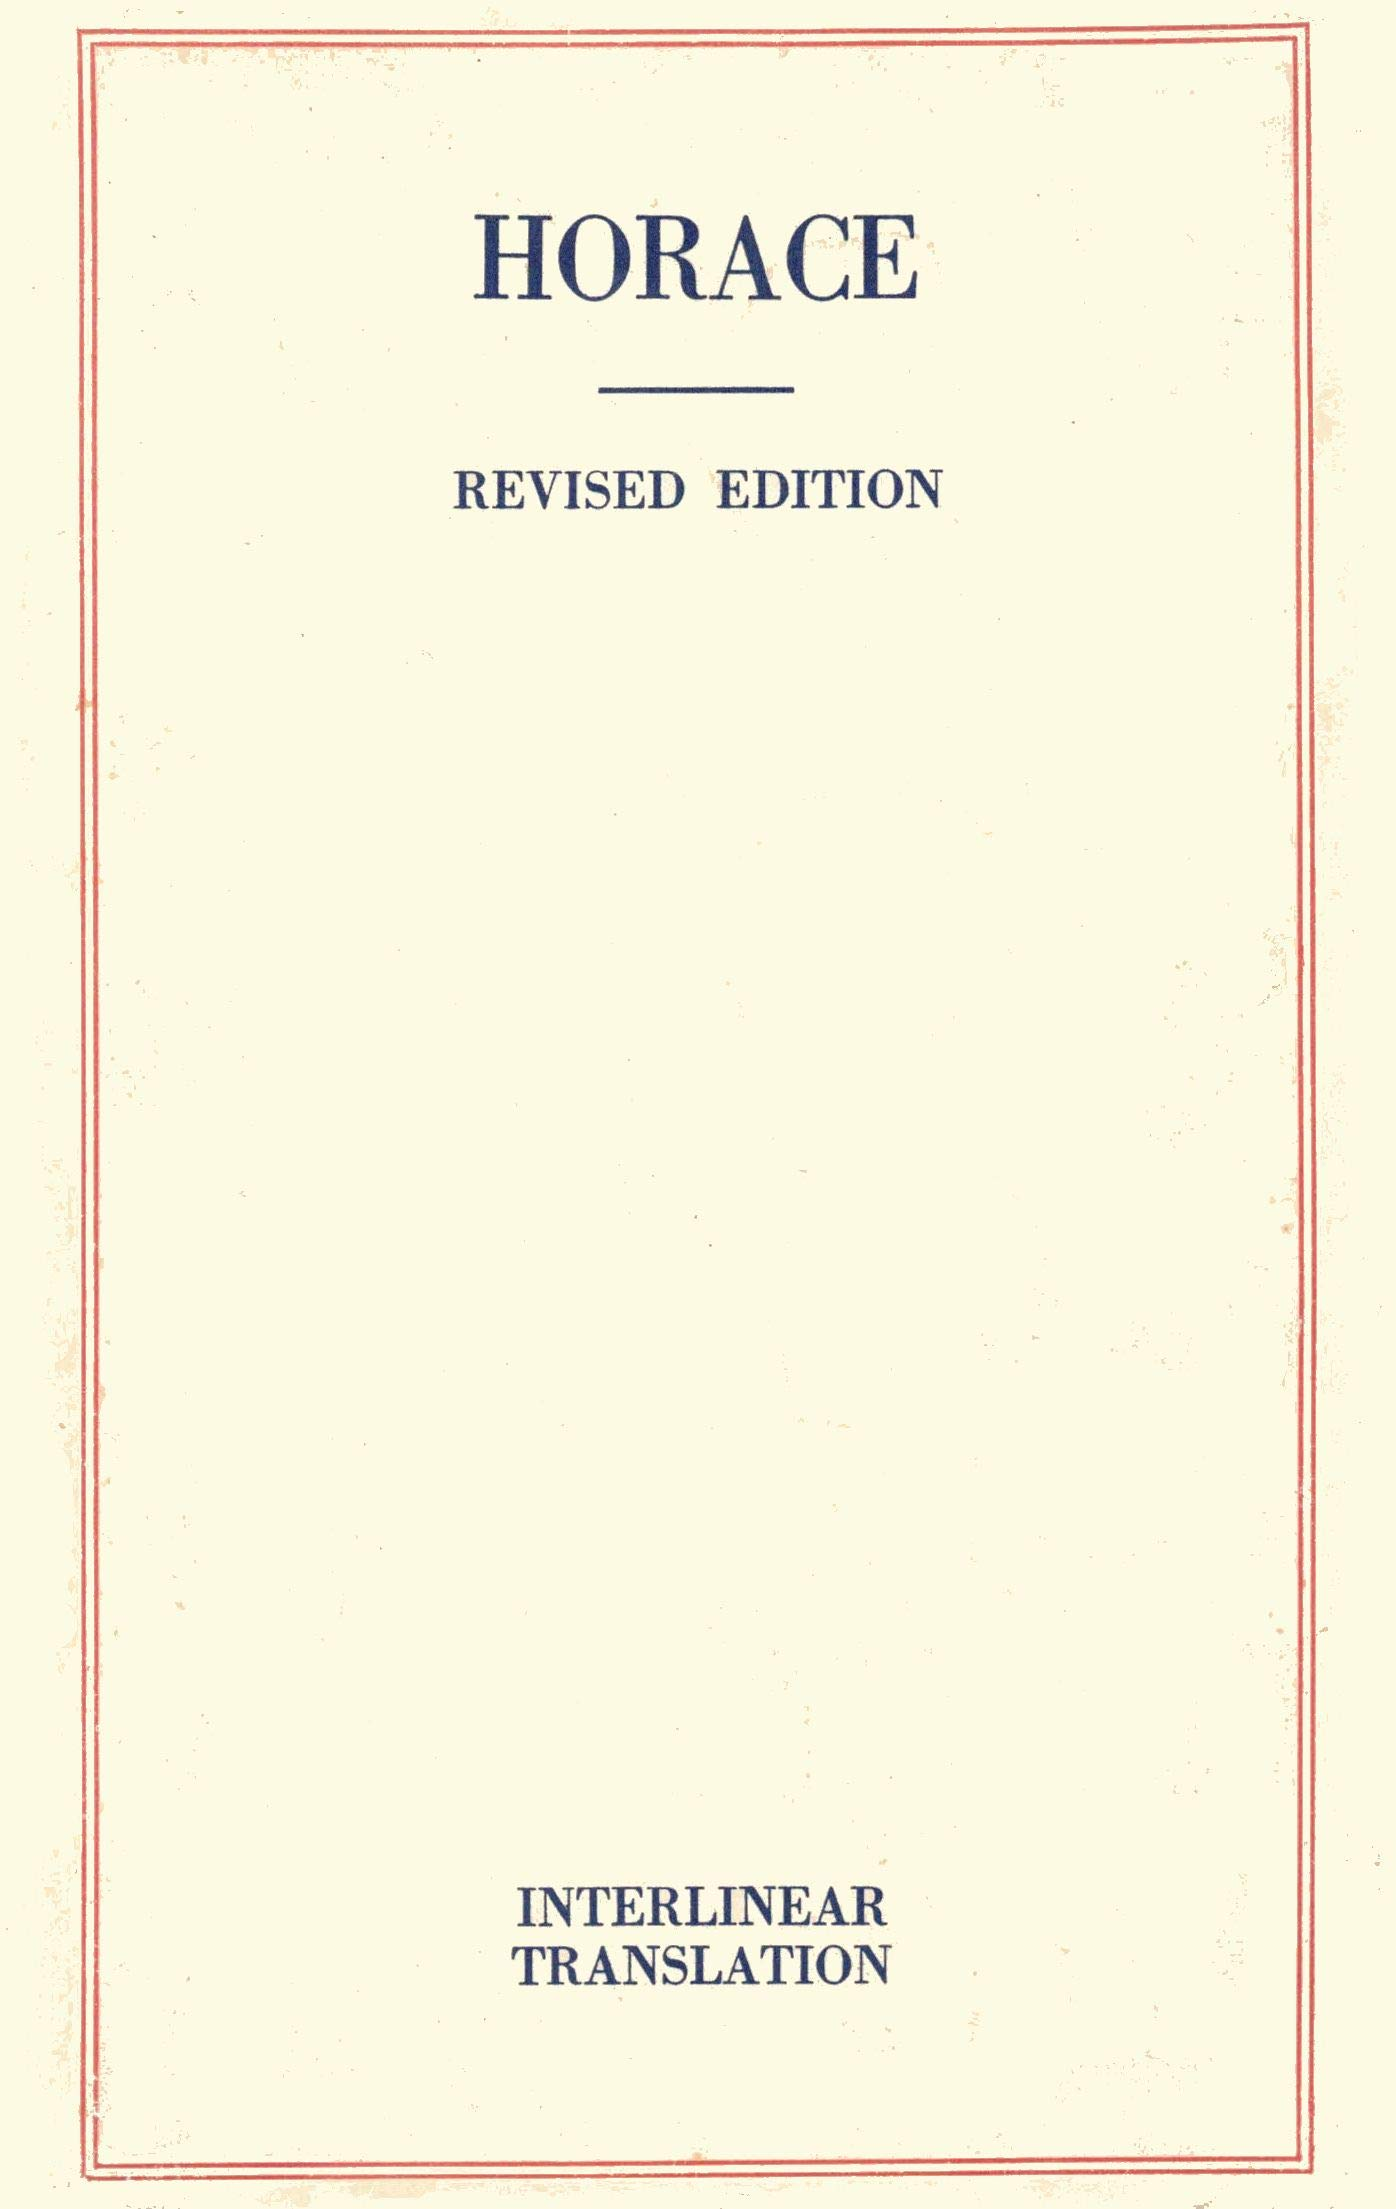 The Complete Works of Horace (Classic Interlinear